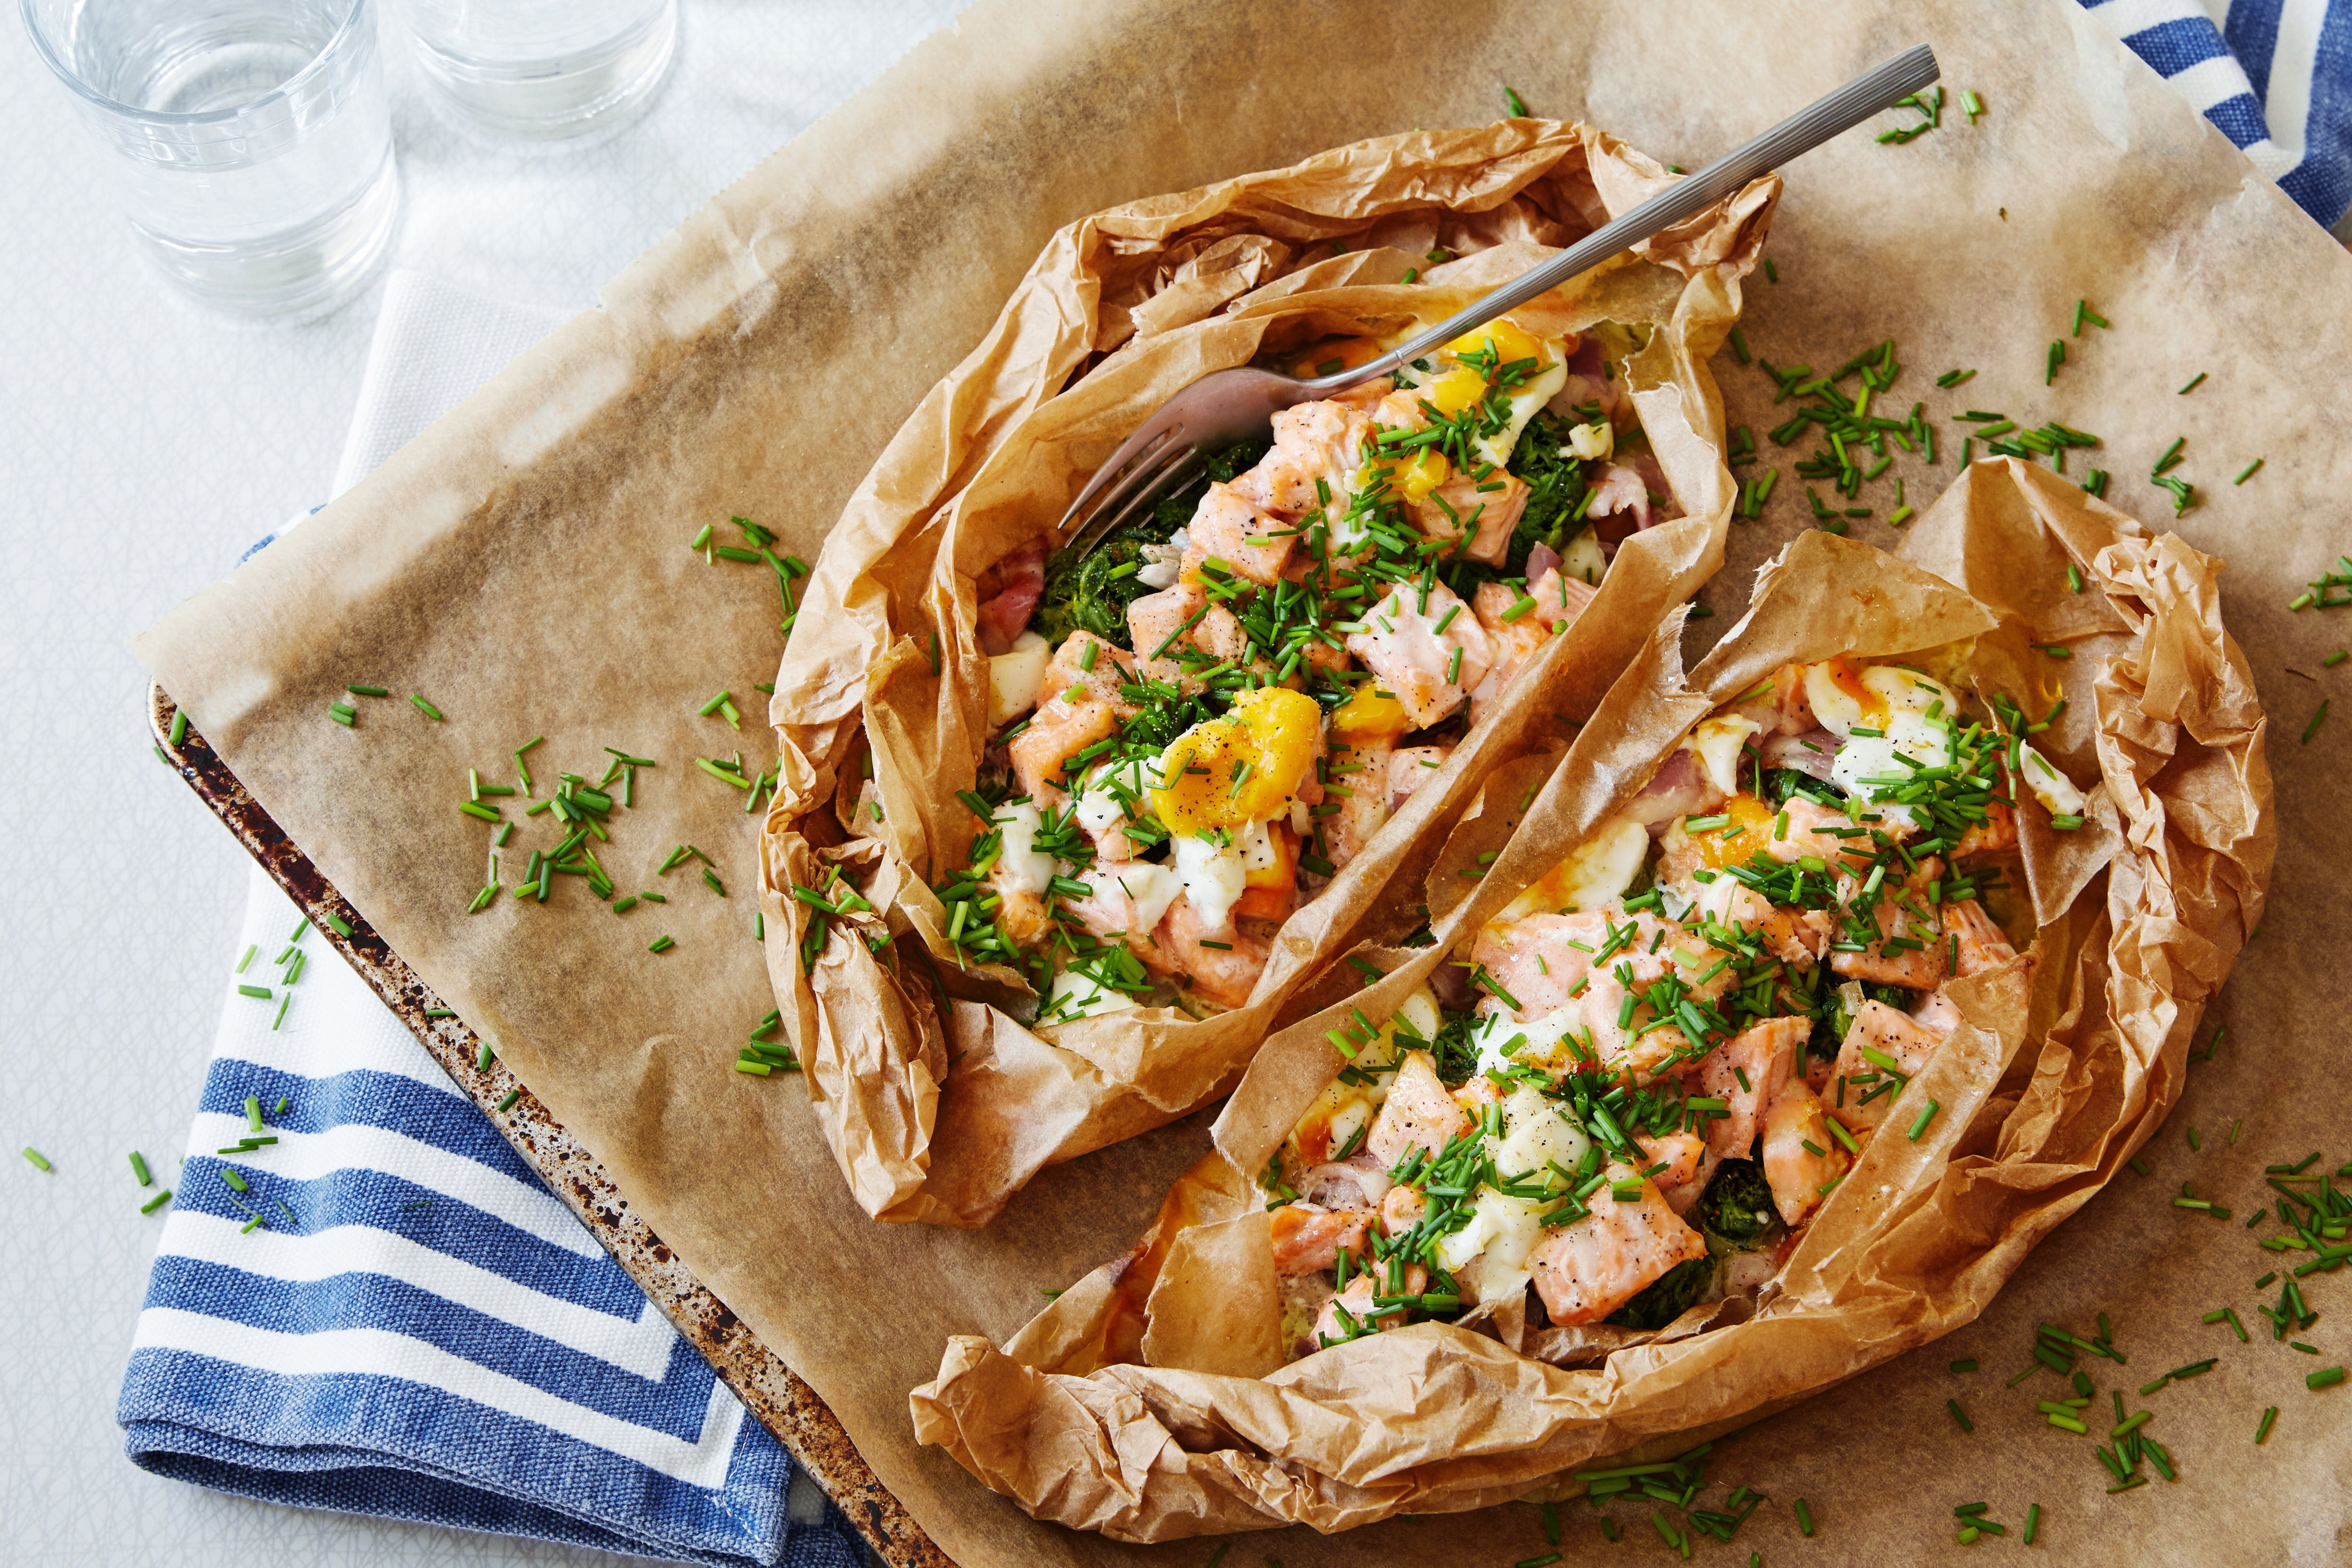 Parchment-baked salmon with spinach and egg